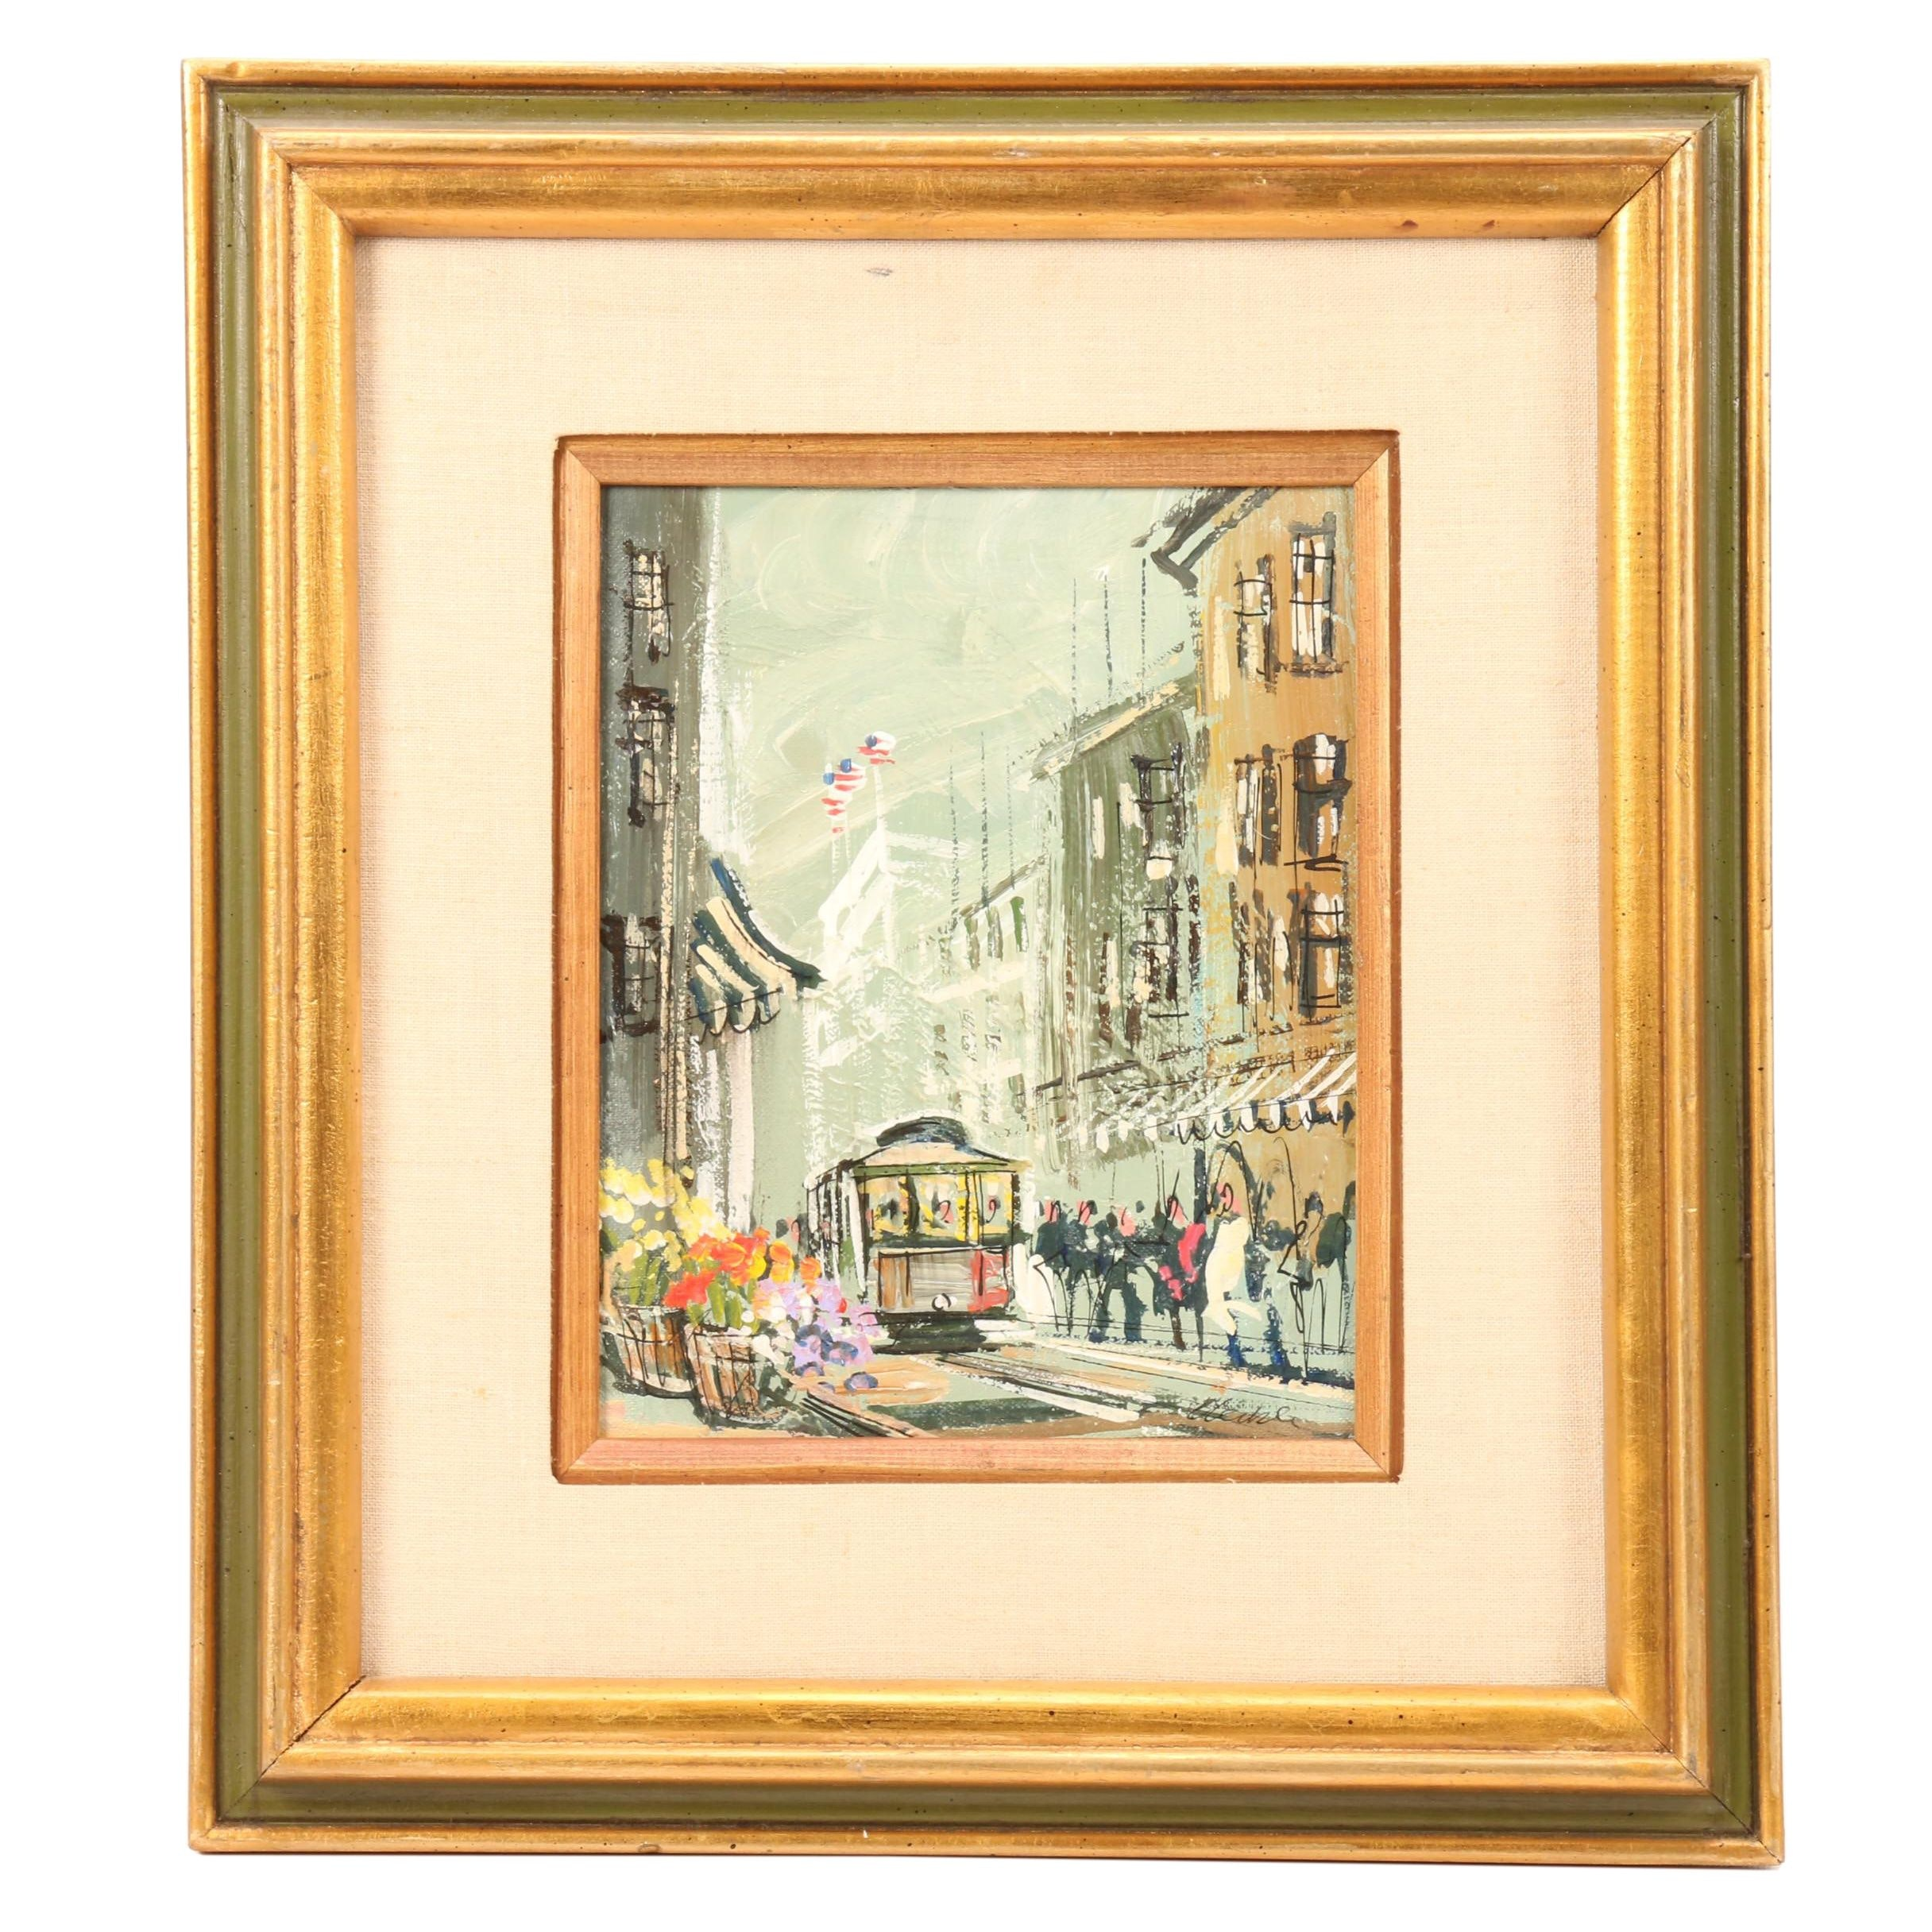 John Checkley Oil Painting of Street Scene with Trolley